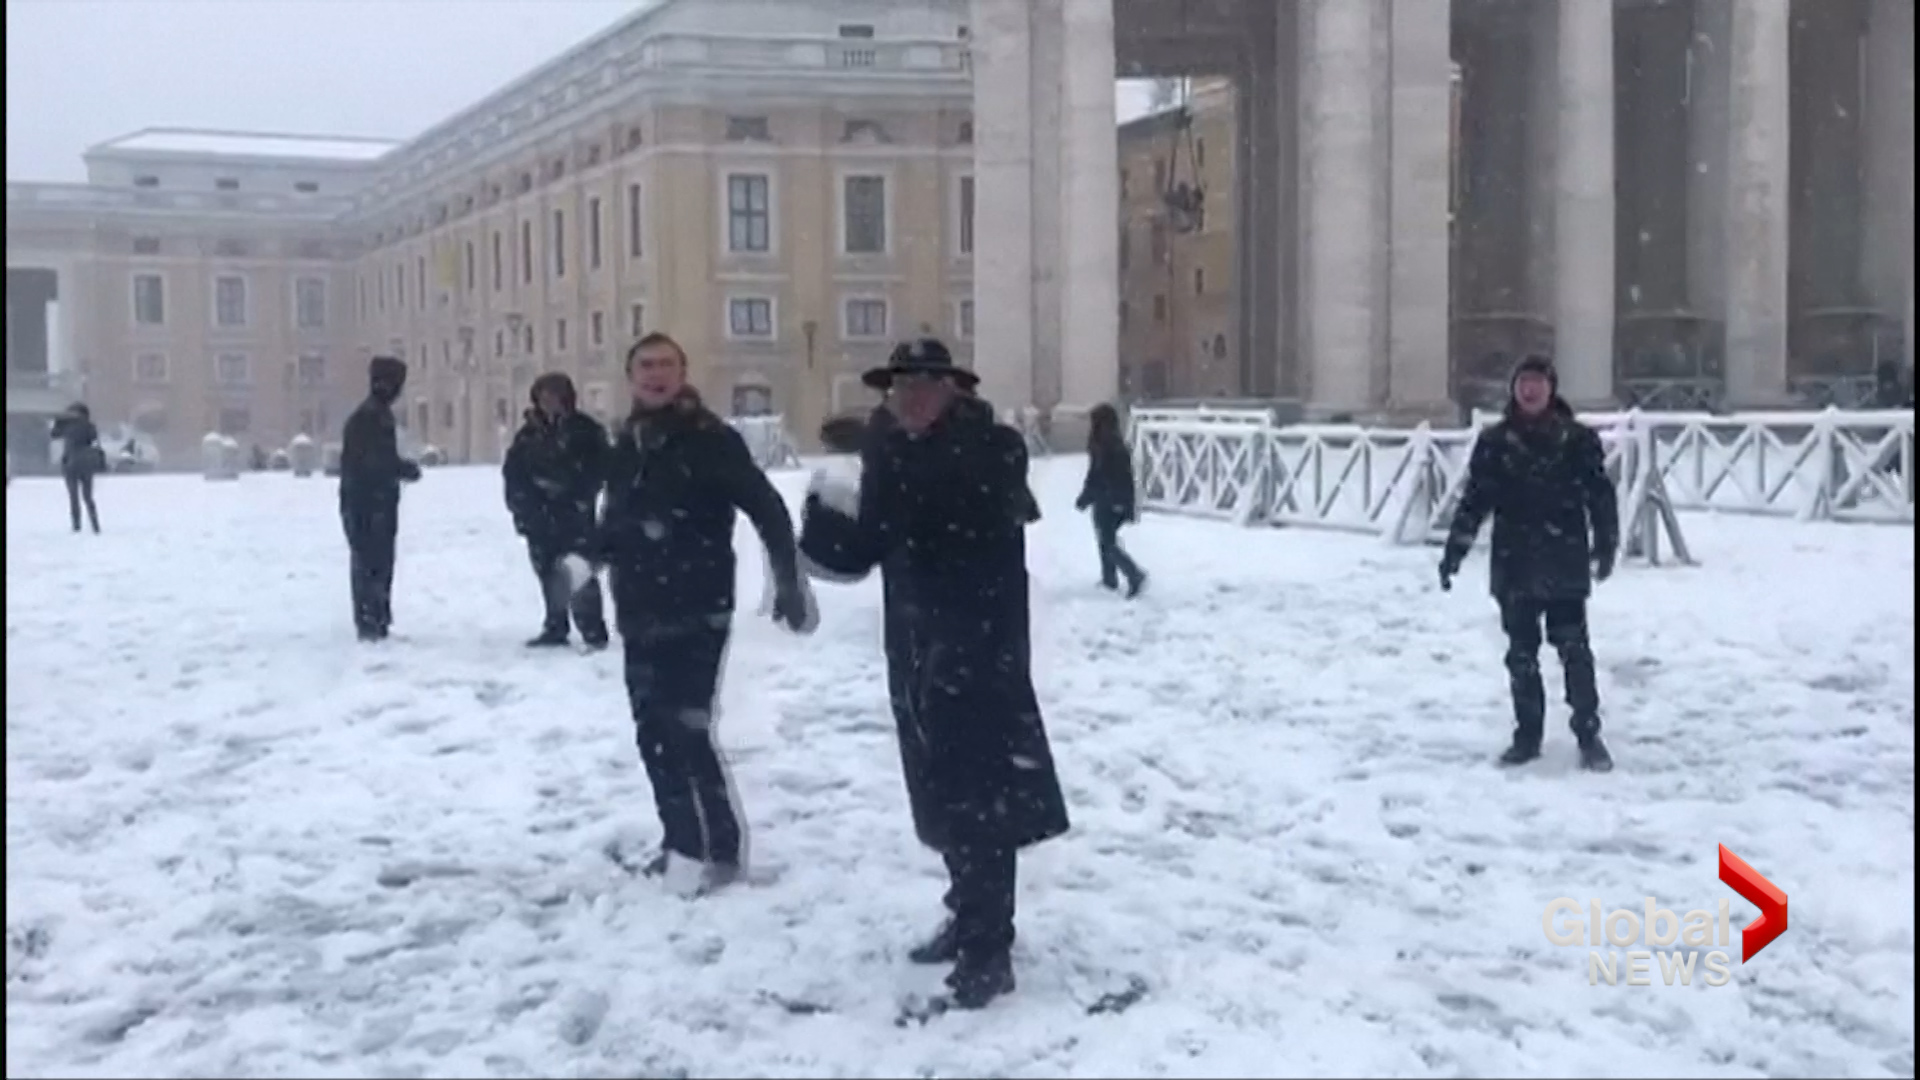 Snowball fight at The Vatican!